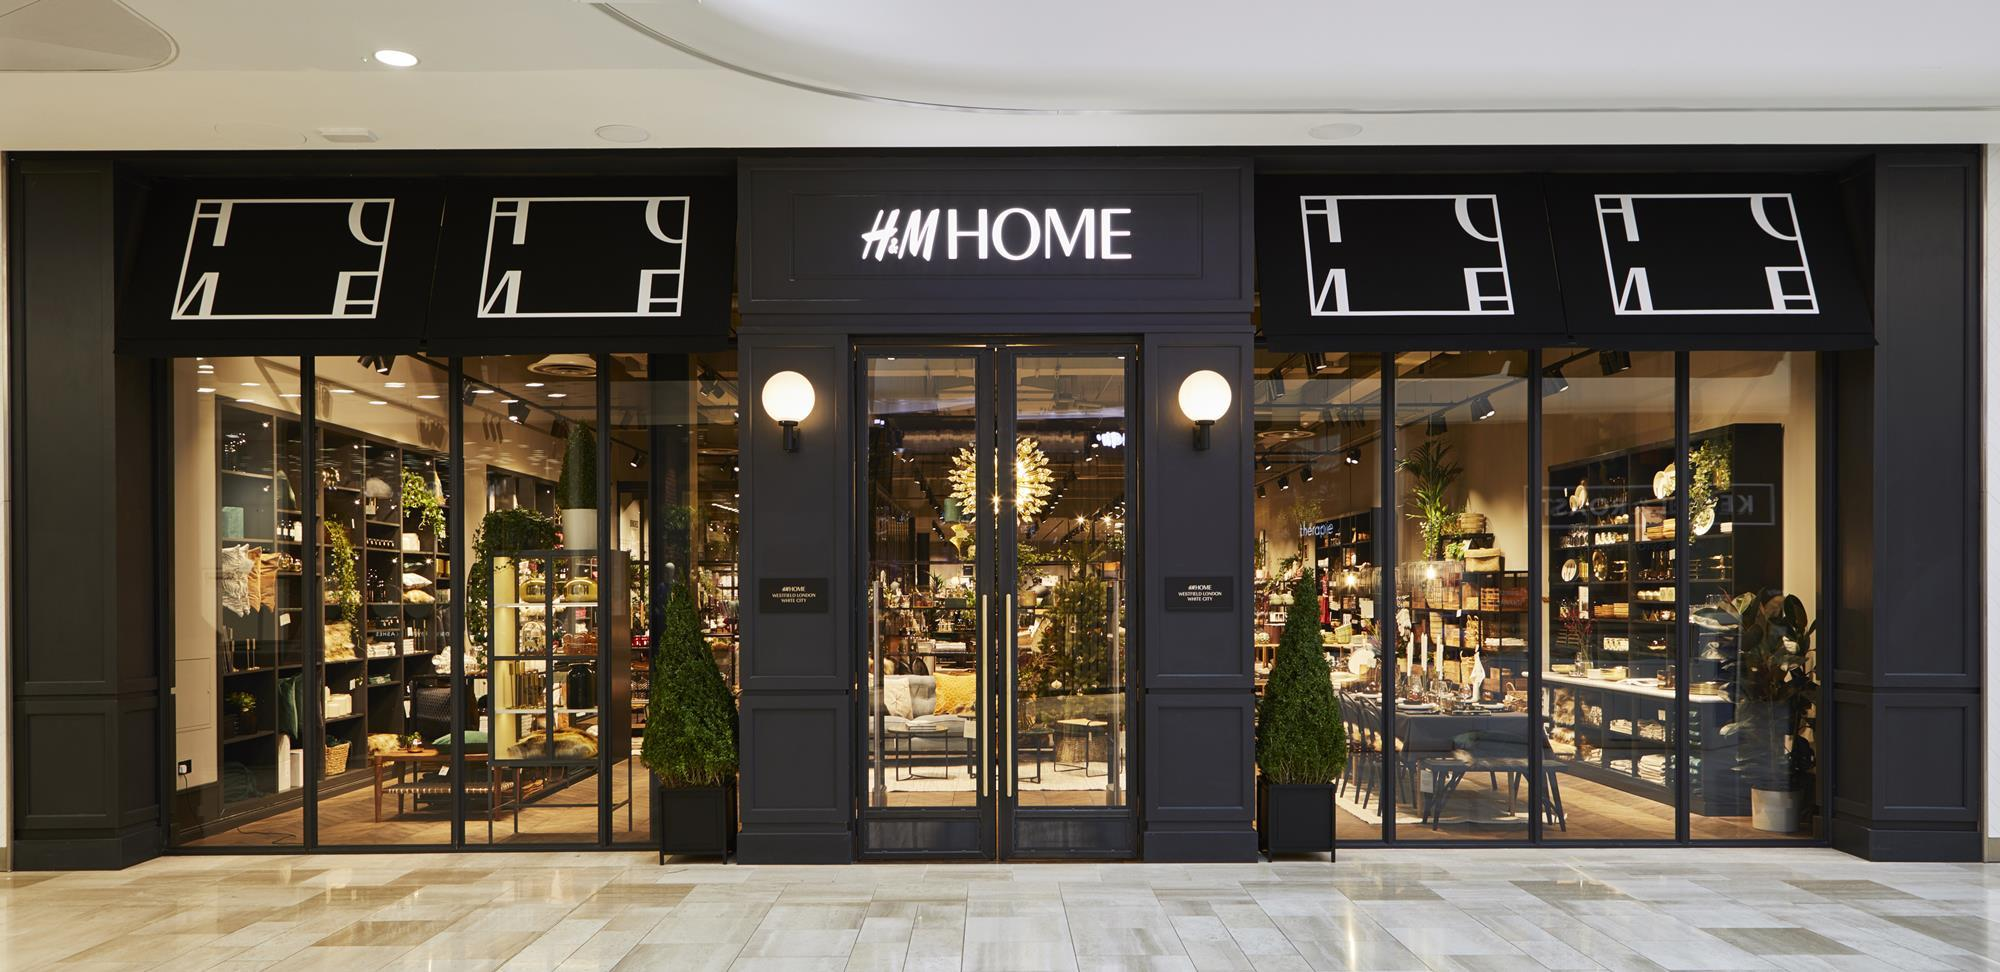 In Pictures Hm Home At Westfield London Photo Gallery Retail Week